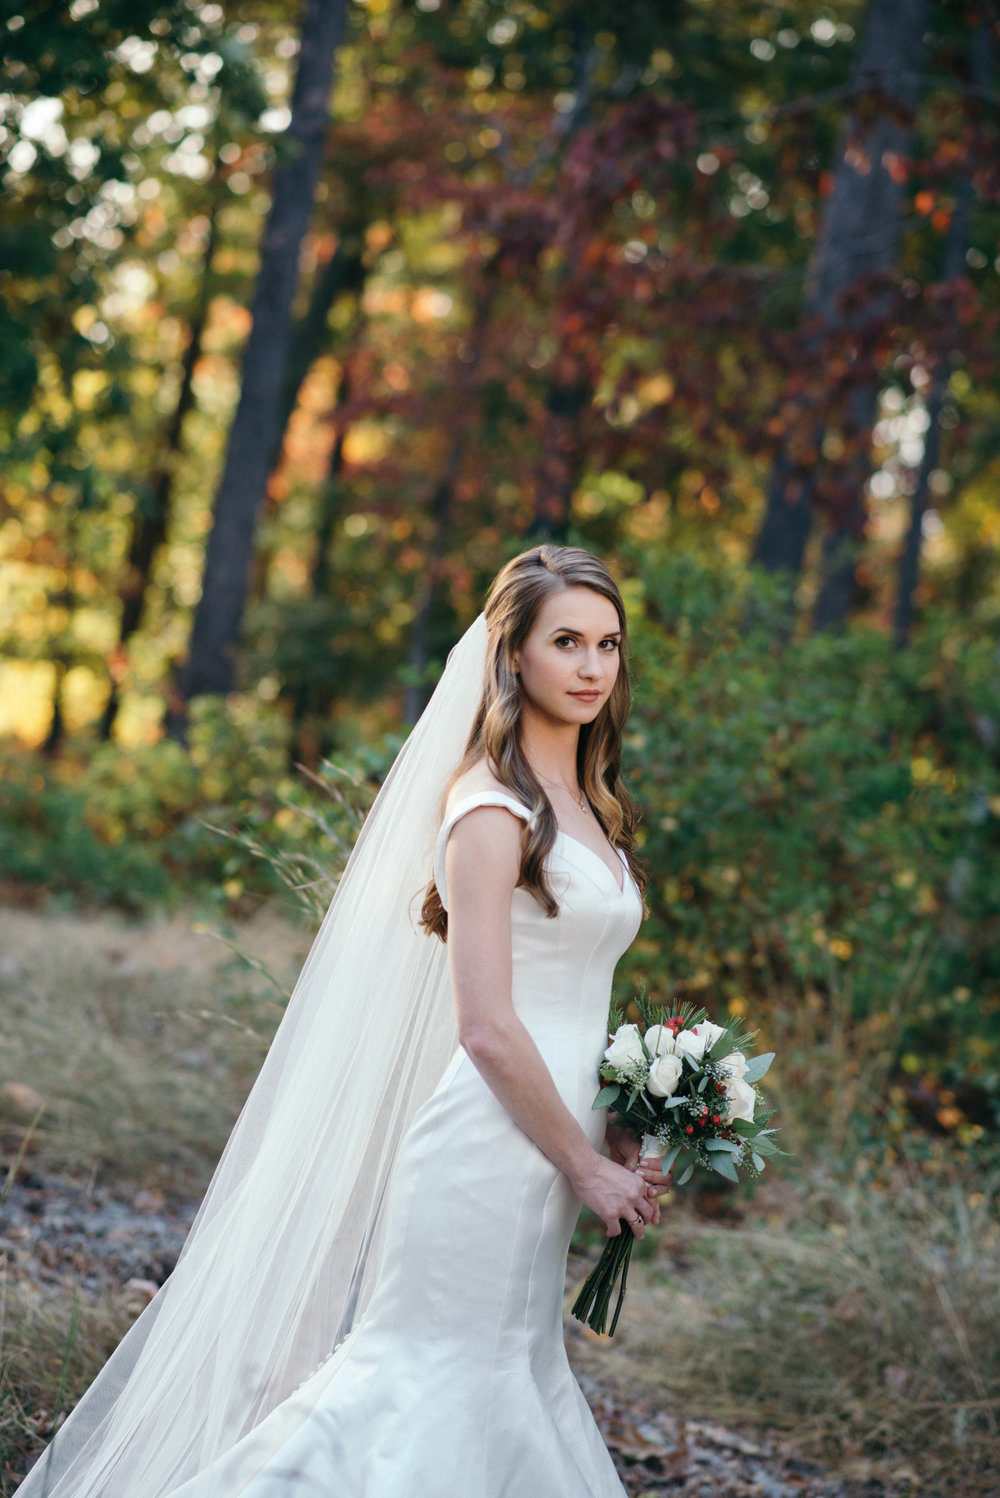 JuliaWilliams|Bridals|Color_MiraPhotographs-59.jpg